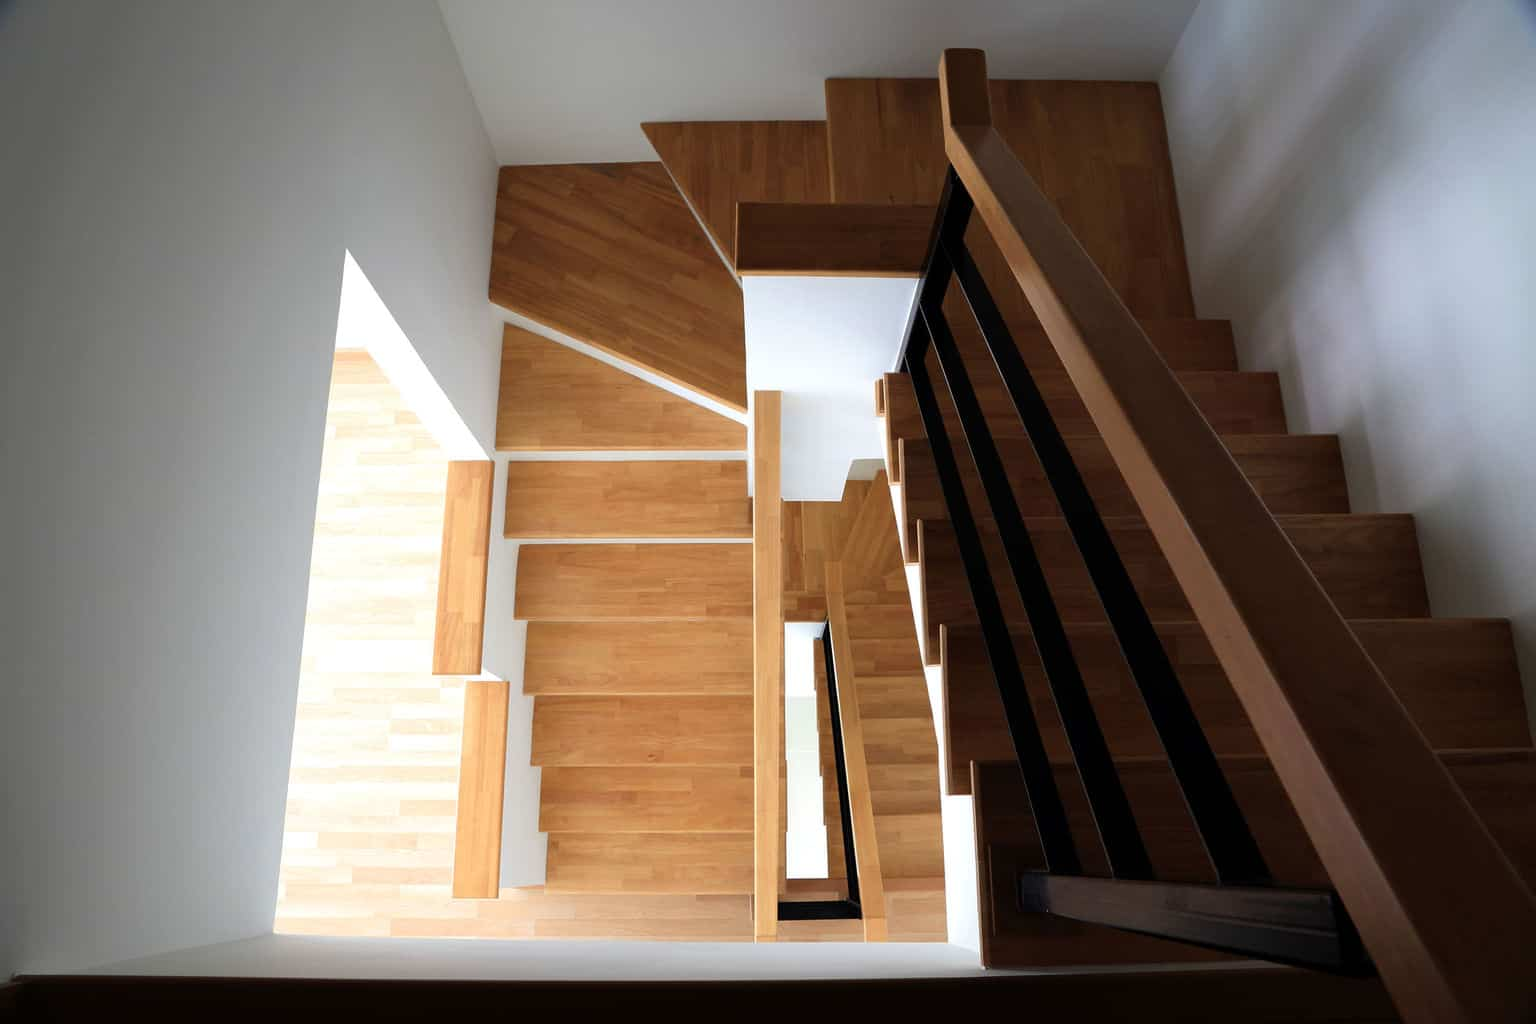 pin pinterest laminate stairs decor search tiles google auf best on house x wood floors slippery flooring